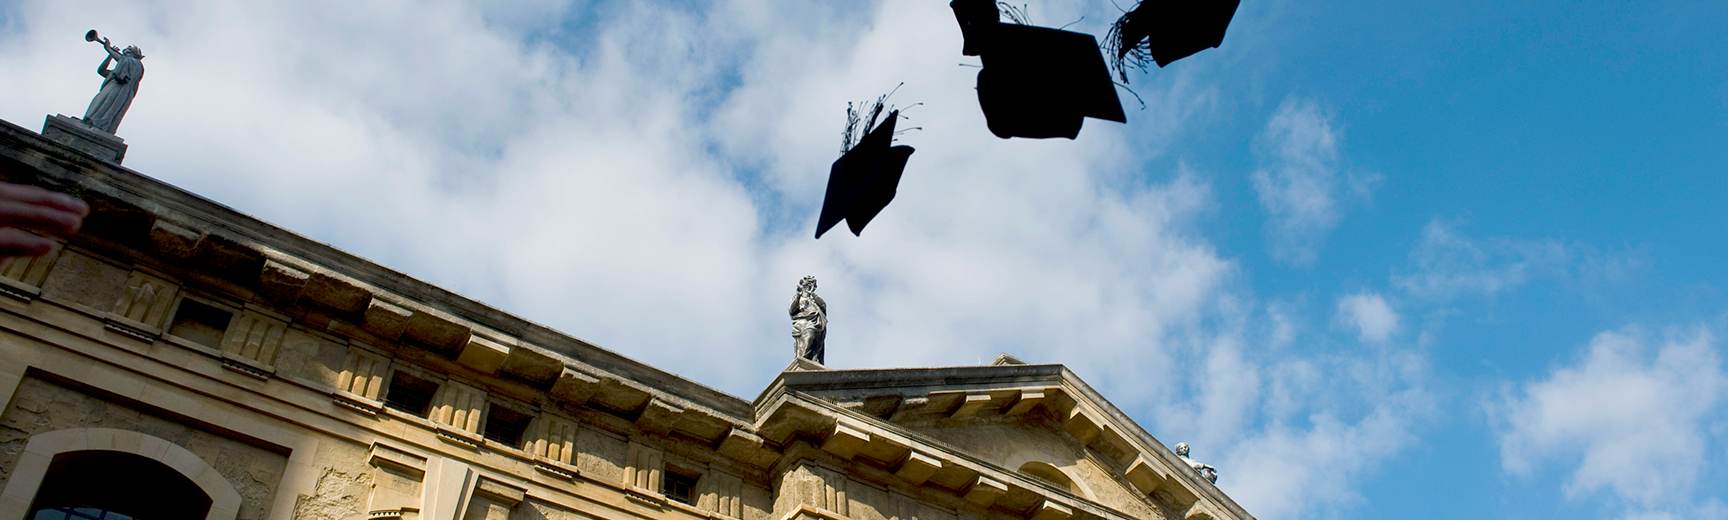 Mortar boards in the air above Sheldonian